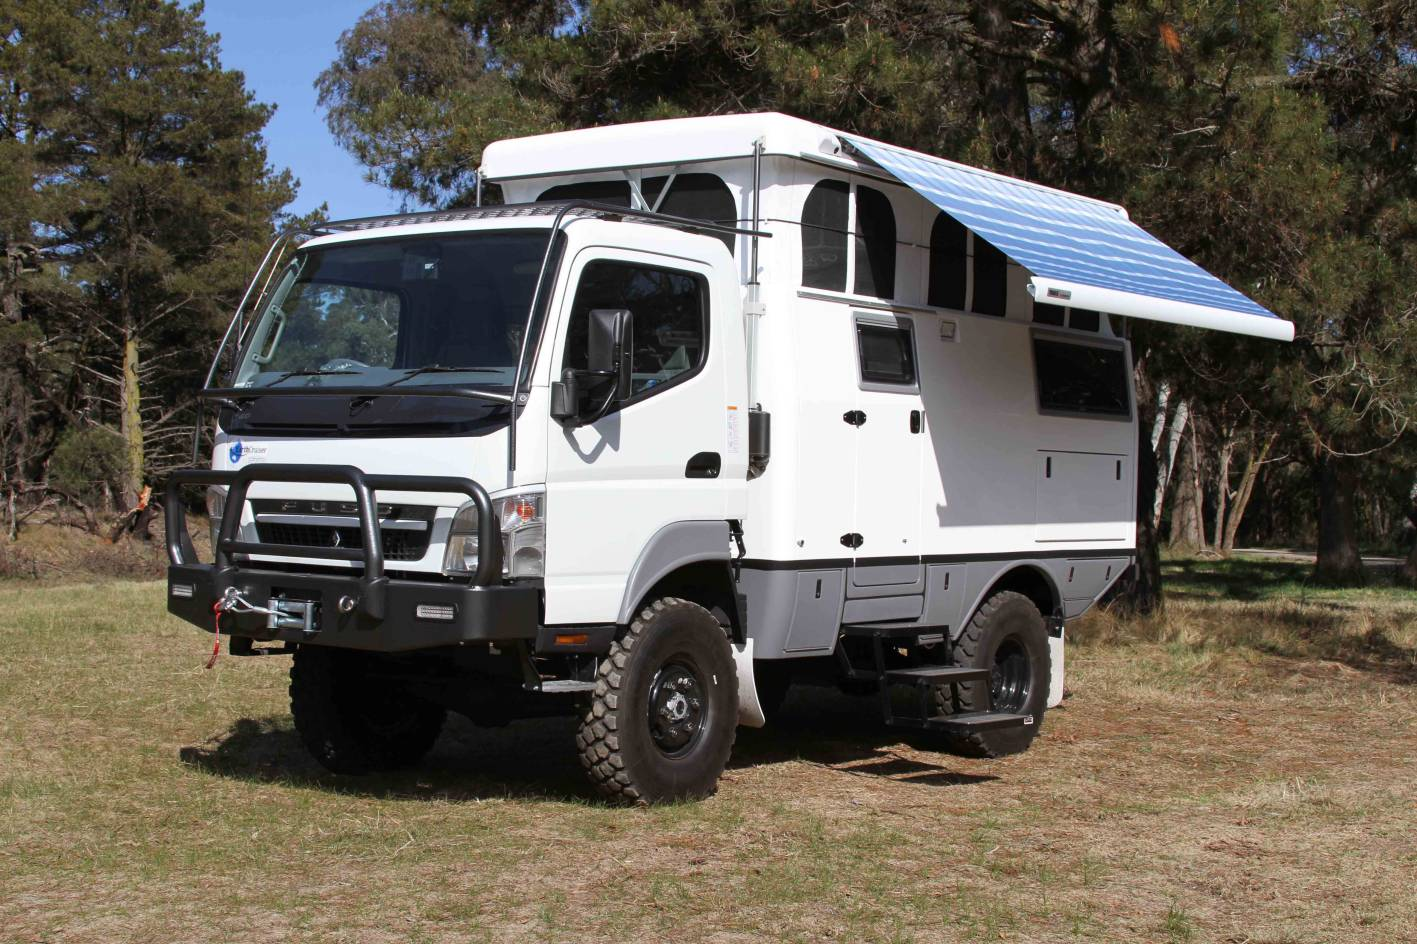 Nissan Of Melbourne News - EarthCruiser Debuts In Melbourne